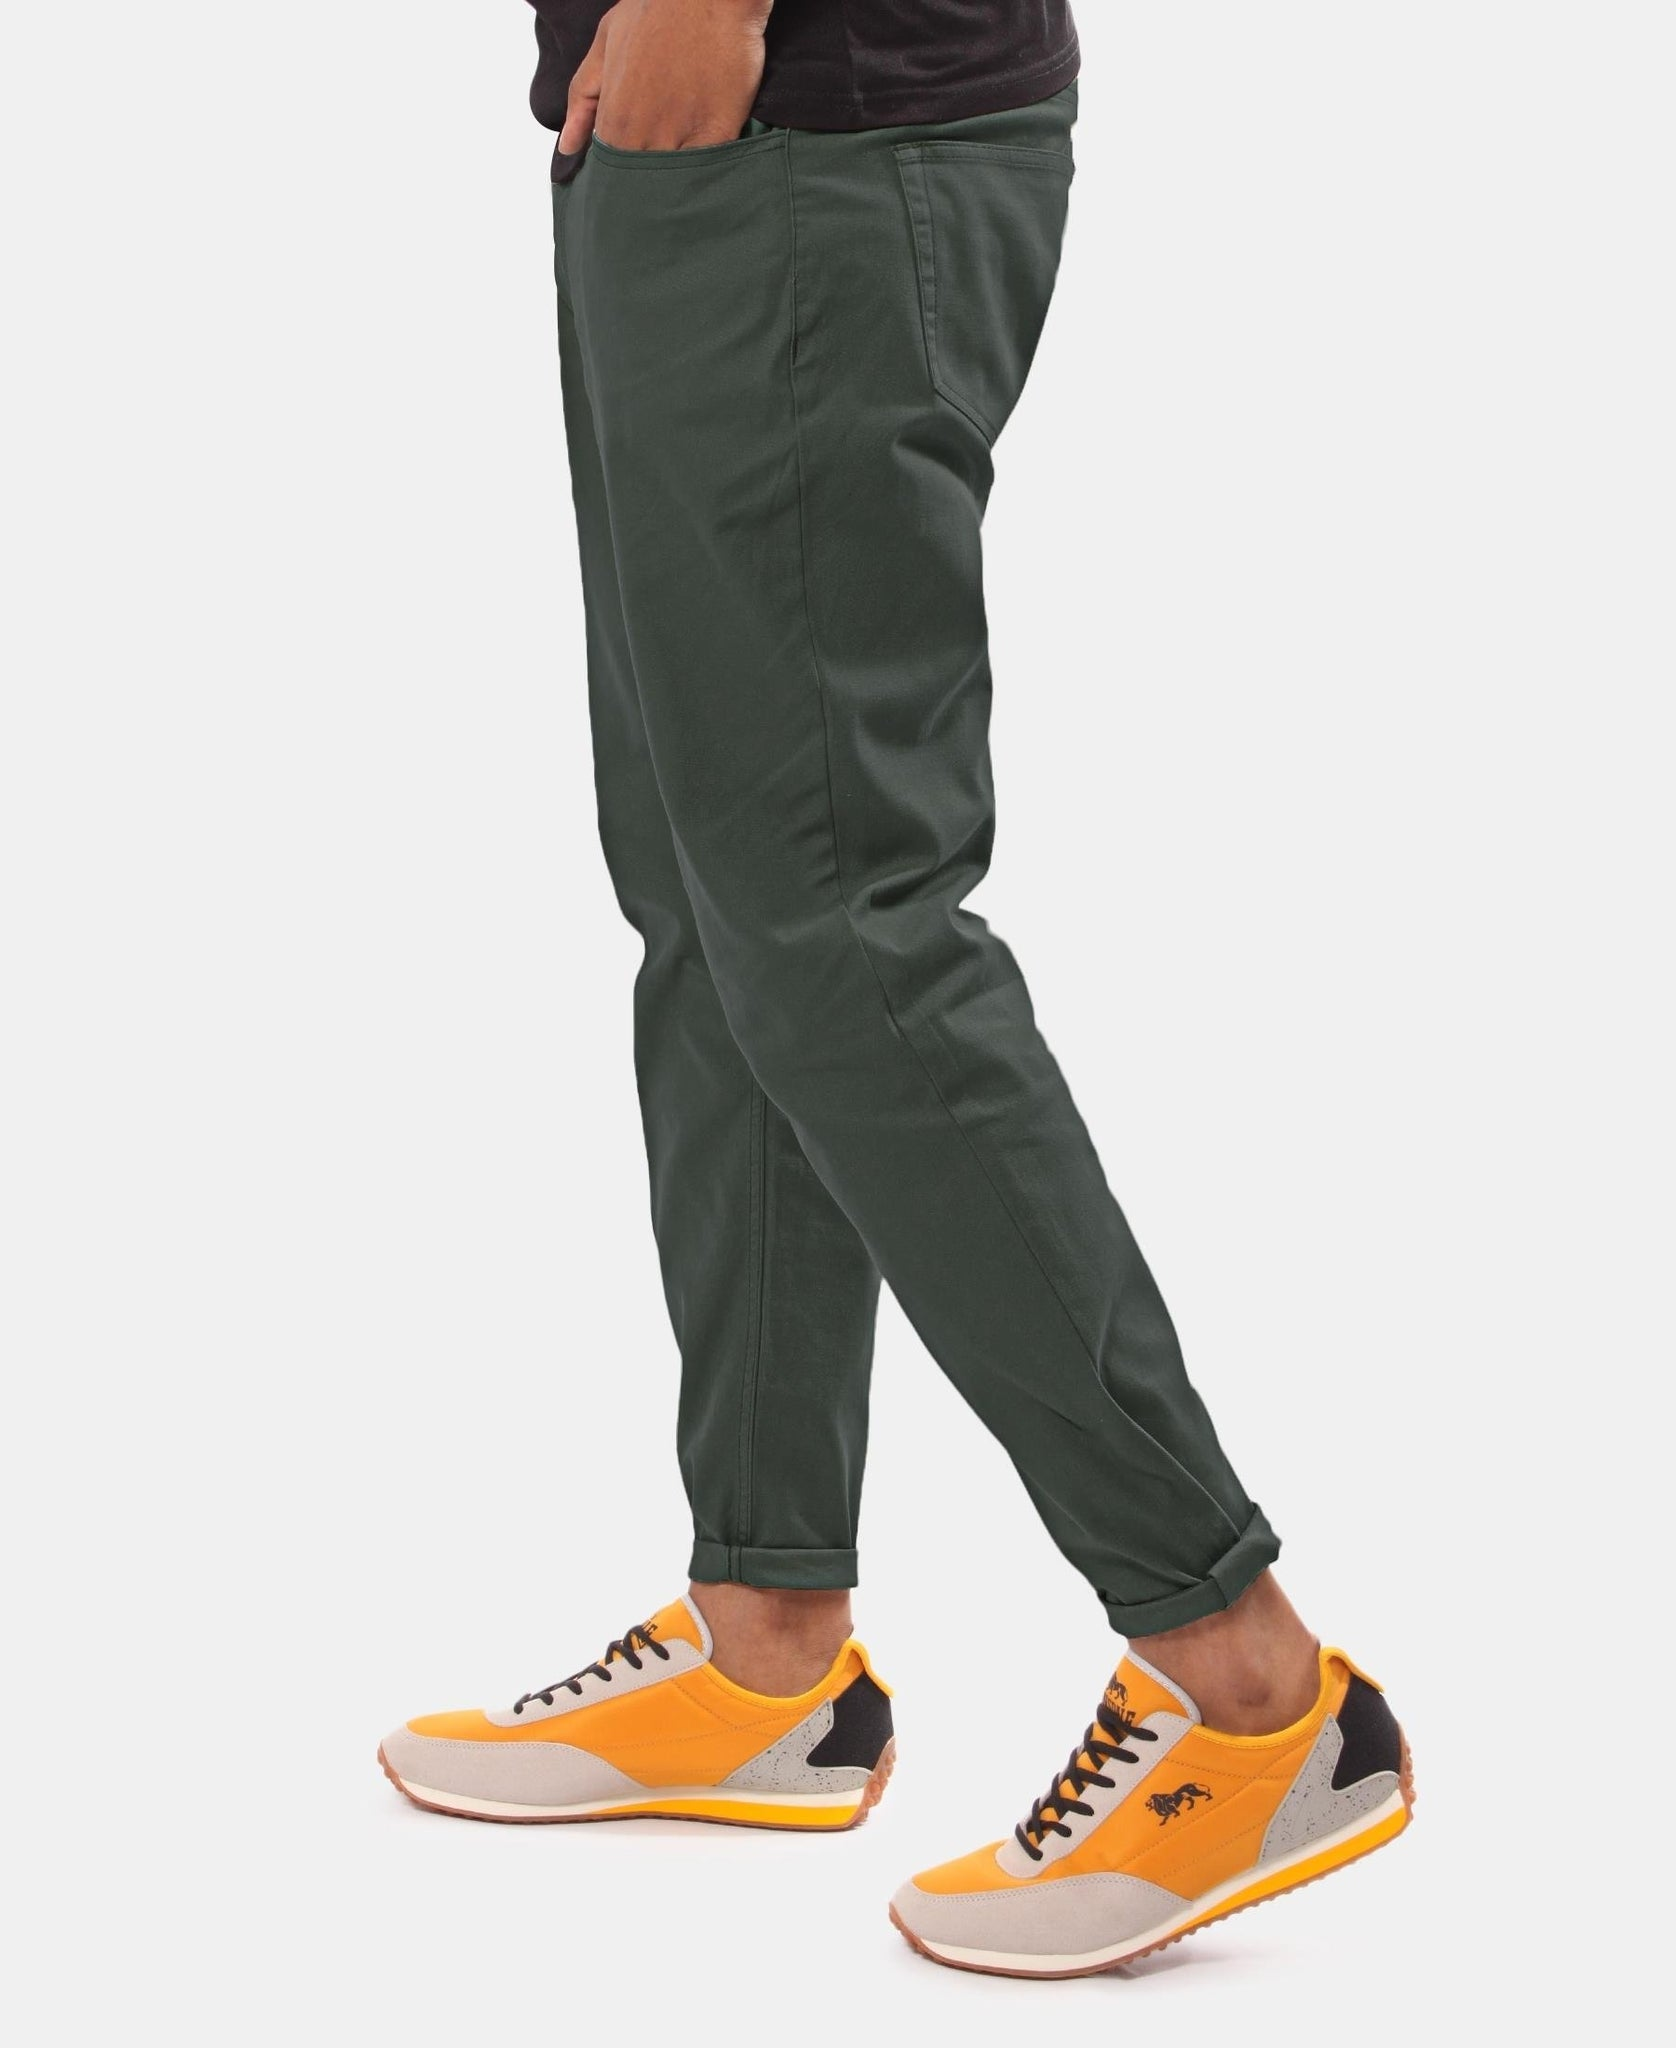 Men's Casual Pants - Dark Green